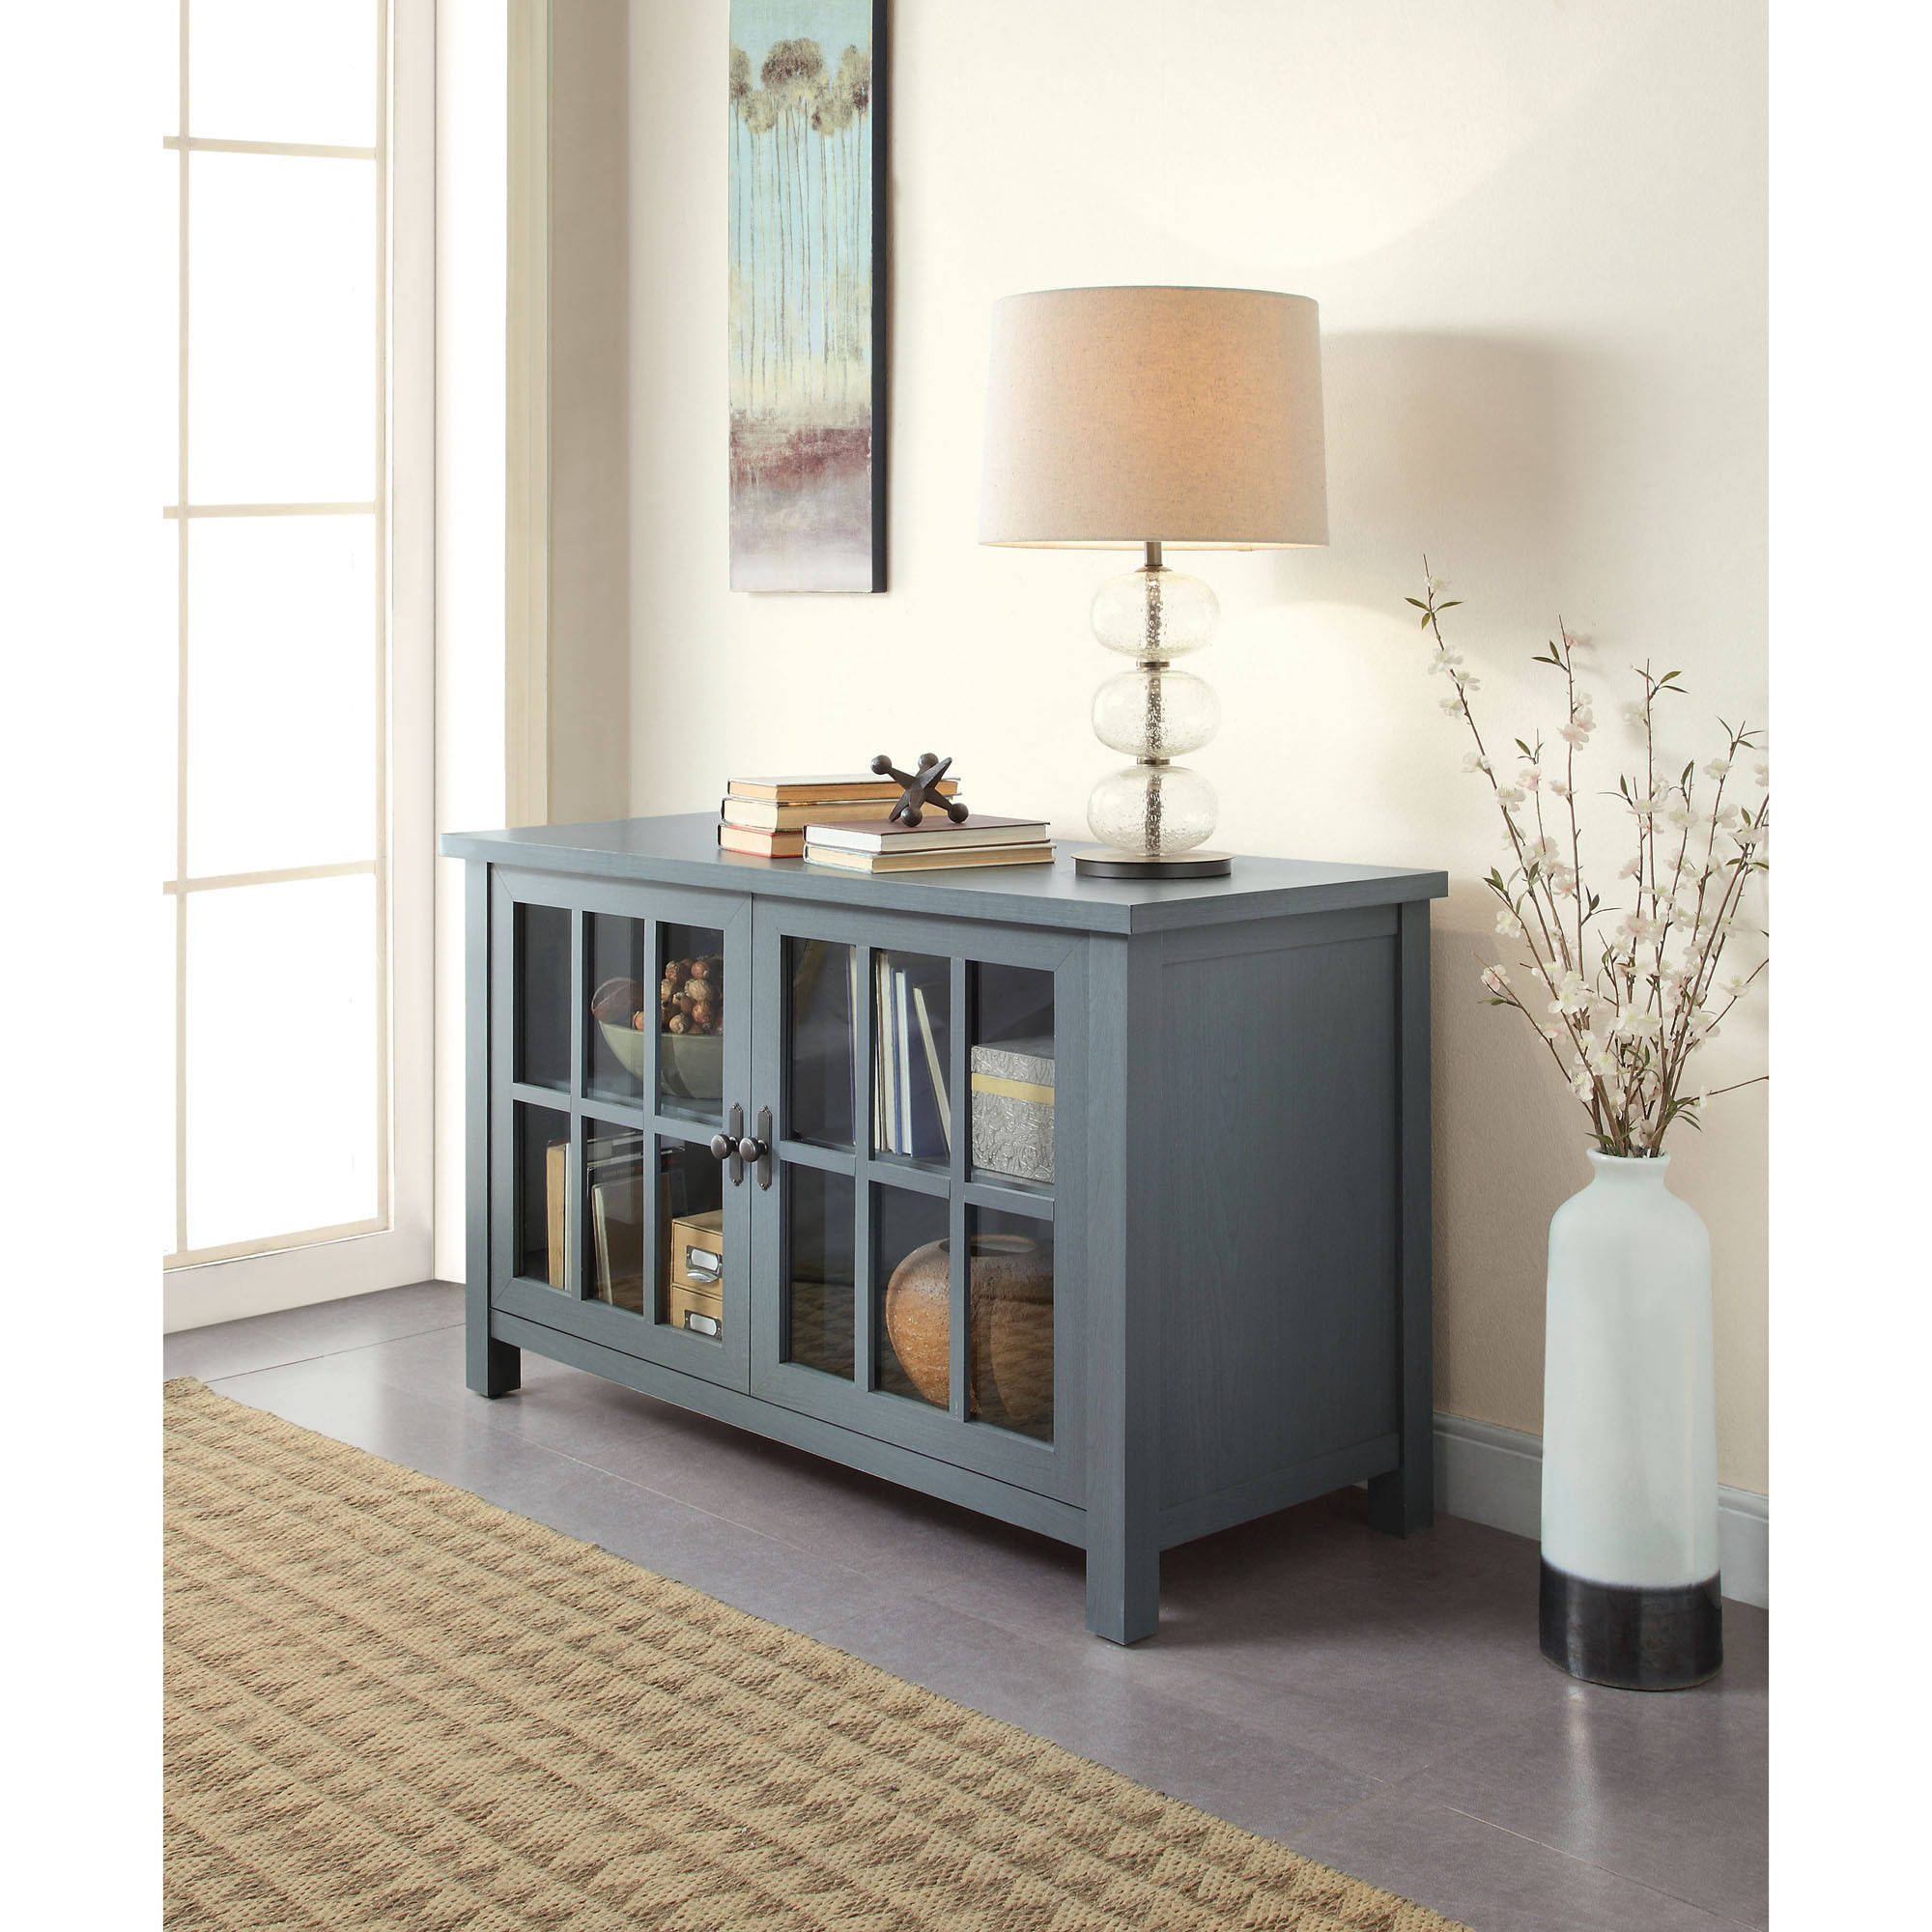 Better Homes and Gardens Oxford Square TV Console for TVs up to 55     Walmart com. Better Homes and Gardens Oxford Square TV Console for TVs up to 55